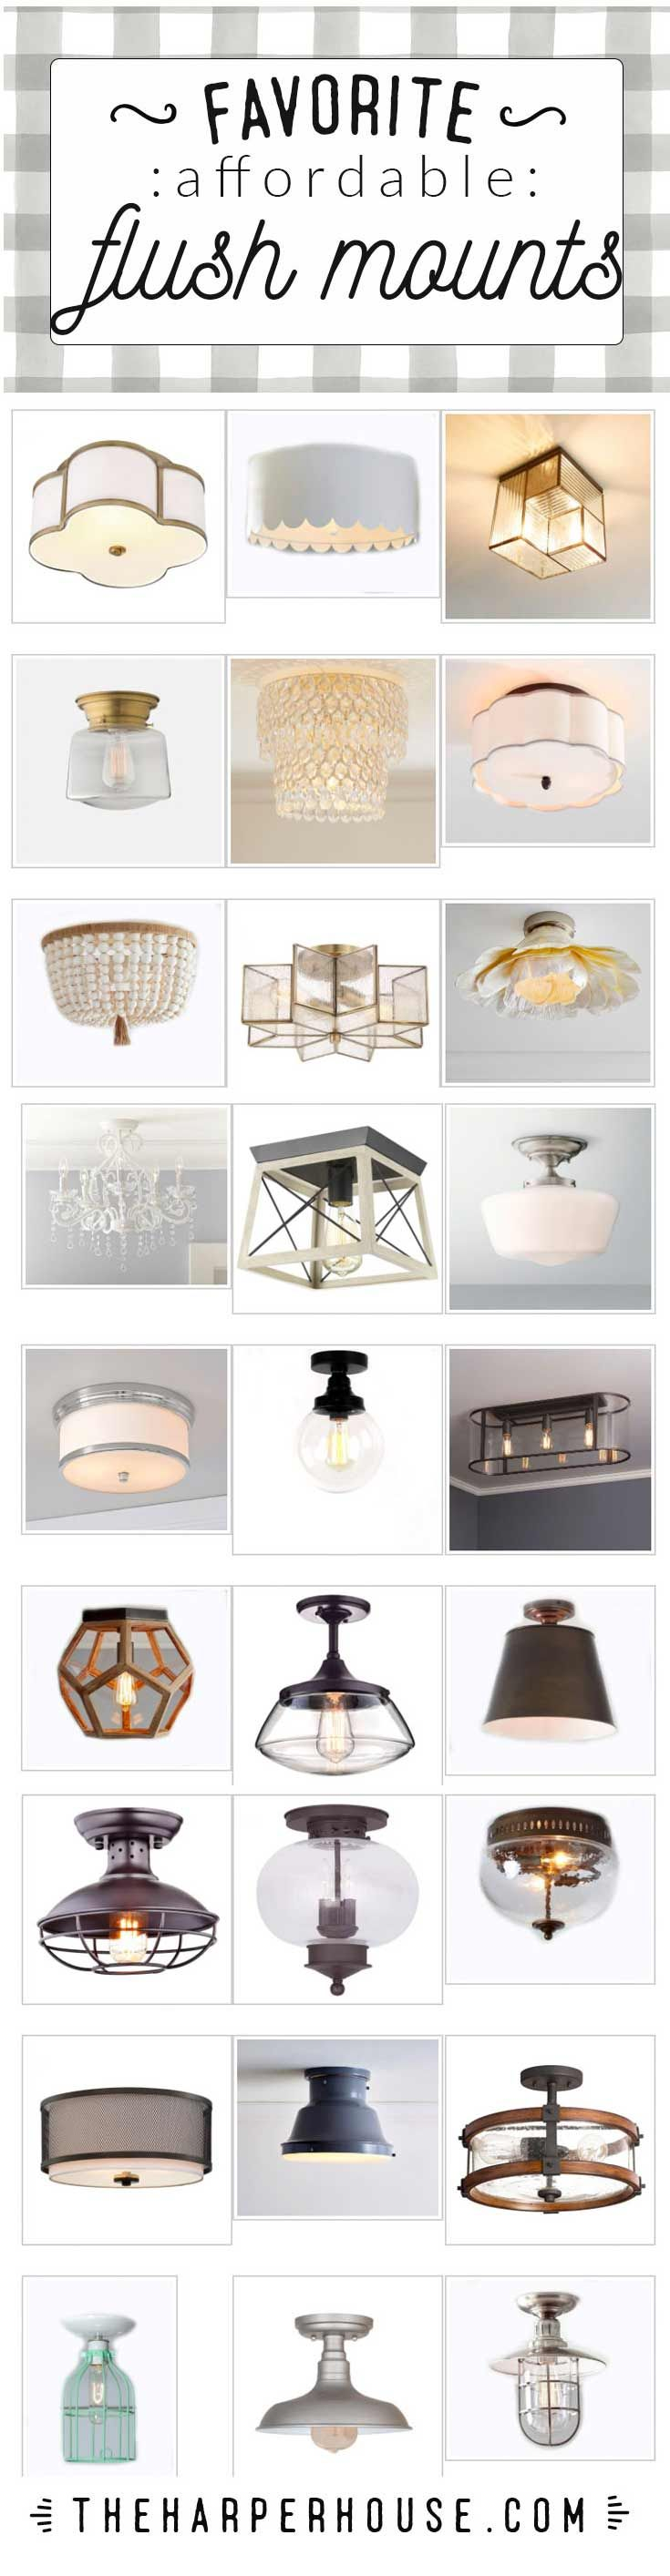 Flush Mount Lighting 30 Affordable Options Living Room Decor